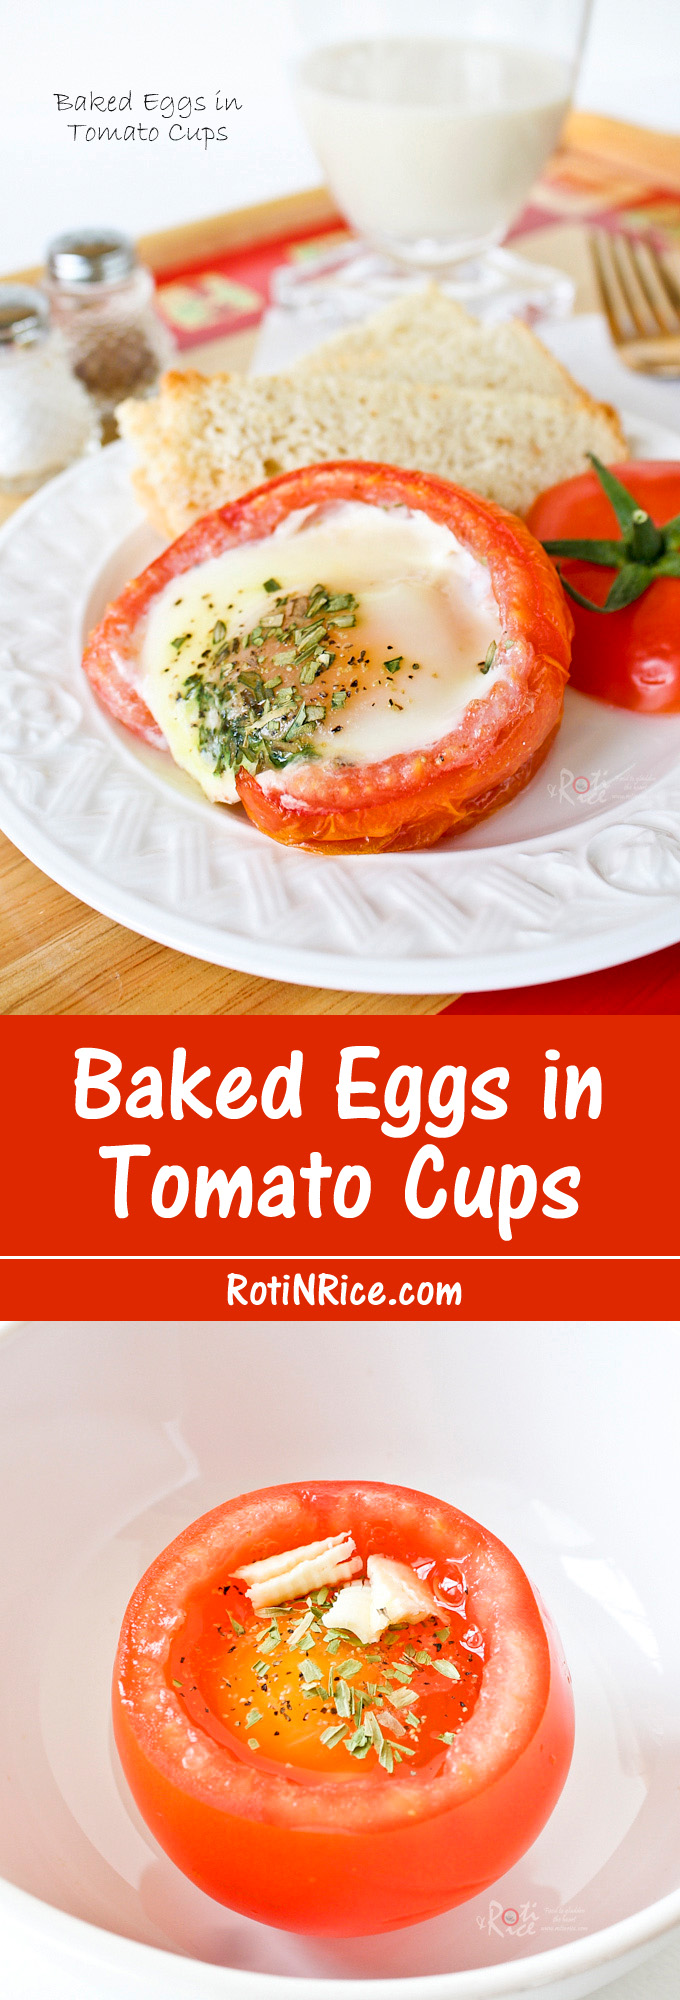 These freshly Baked Eggs in Tomato Cups with dried herbs make a lovely and tasty breakfast. A great way to use up homegrown or store bought tomatoes on the vine. | RotiNRice.com